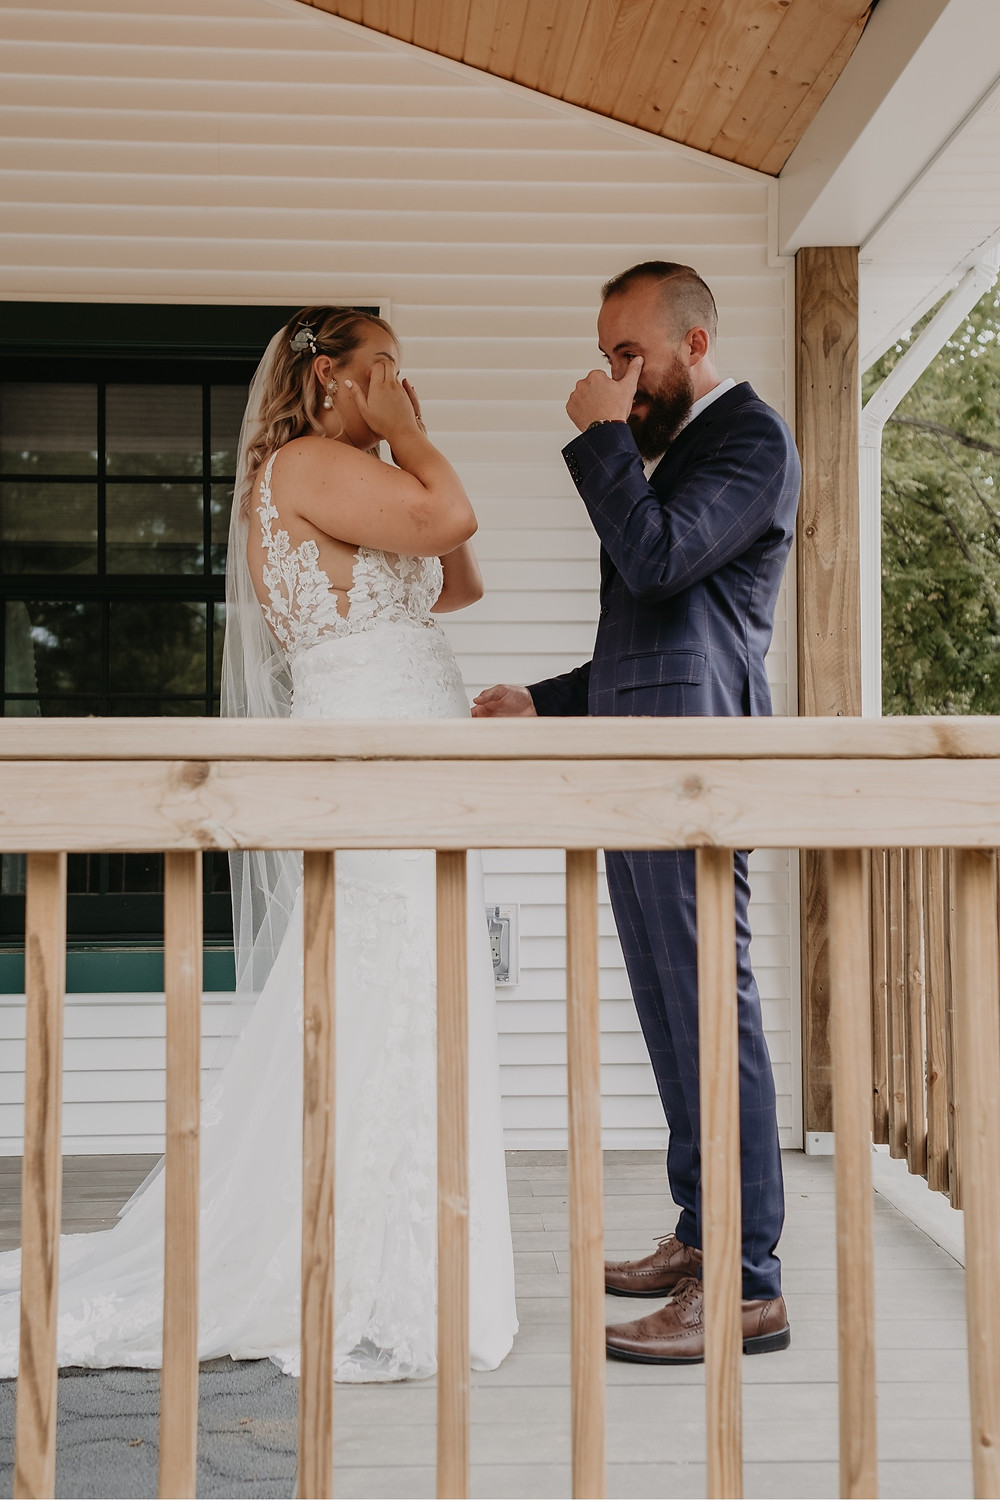 Bride and groom wipe happy tears as they see each other on wedding day. Photographed by Nicole Leanne Photography.